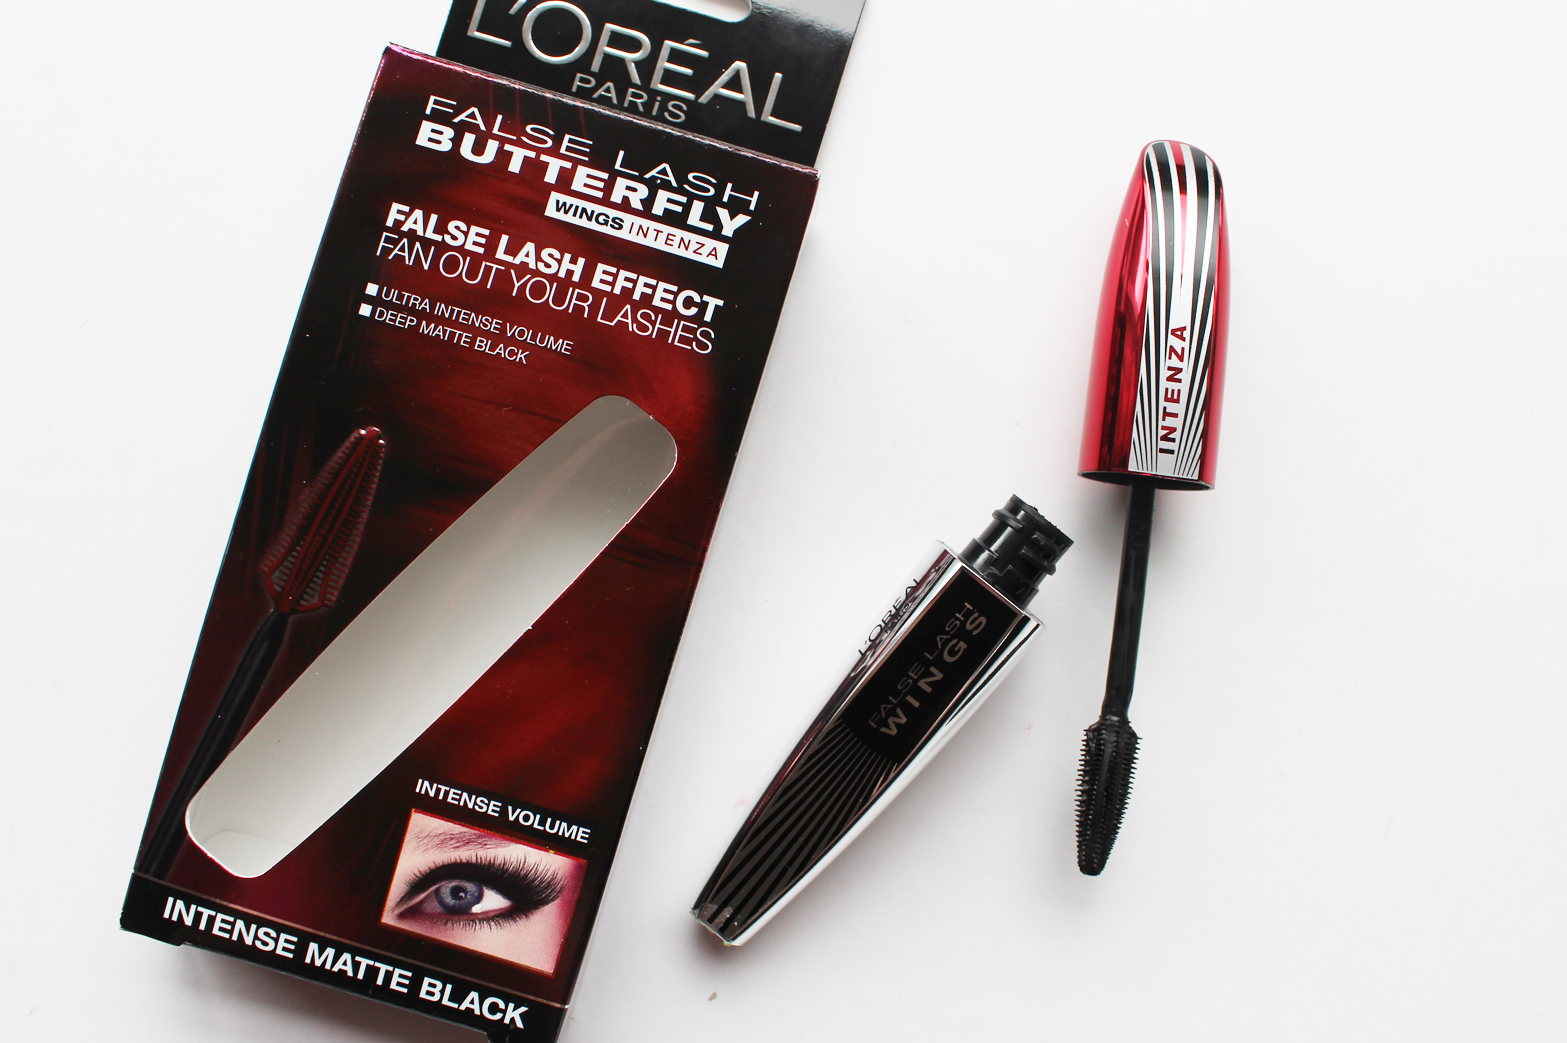 L'OREAL PARIS | New Releases October/November '15 - Review + Swatches - Butterfly Wings Intenza Mascara - CassandraMyee